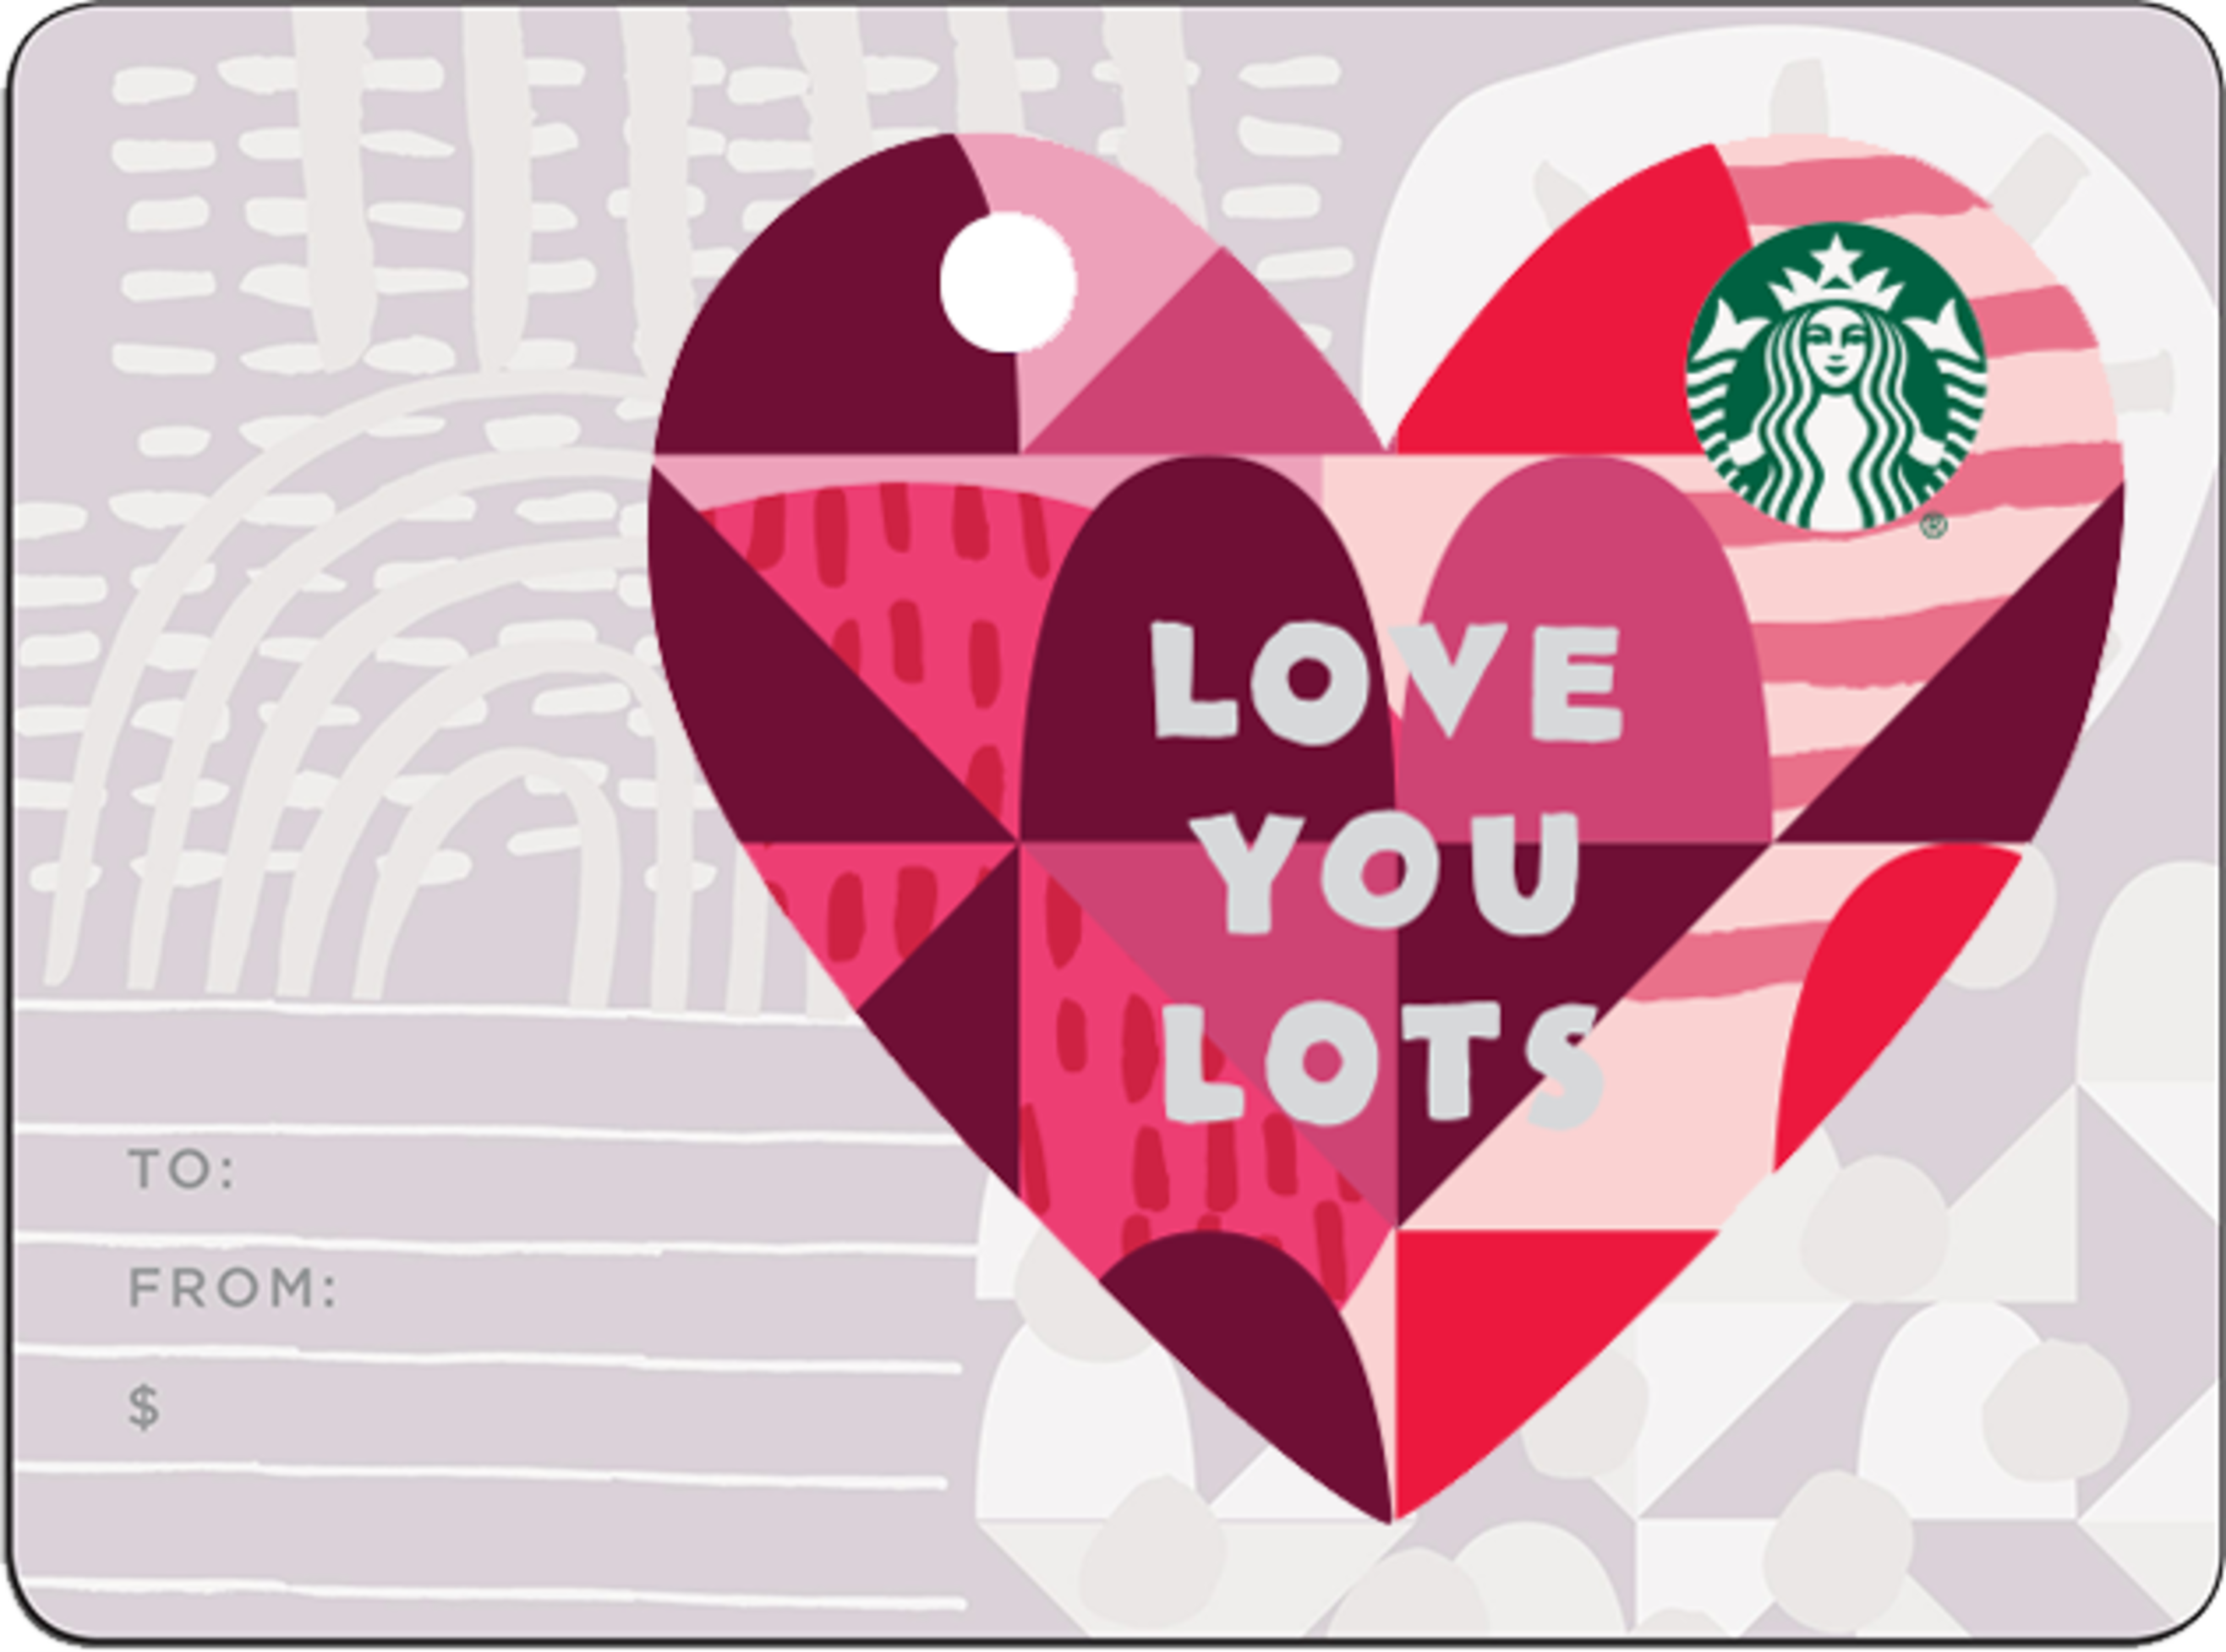 MAKE SOMEONE HAPPY WITH GIFTS AND BEVERAGES FROM STARBUCKS news cover image